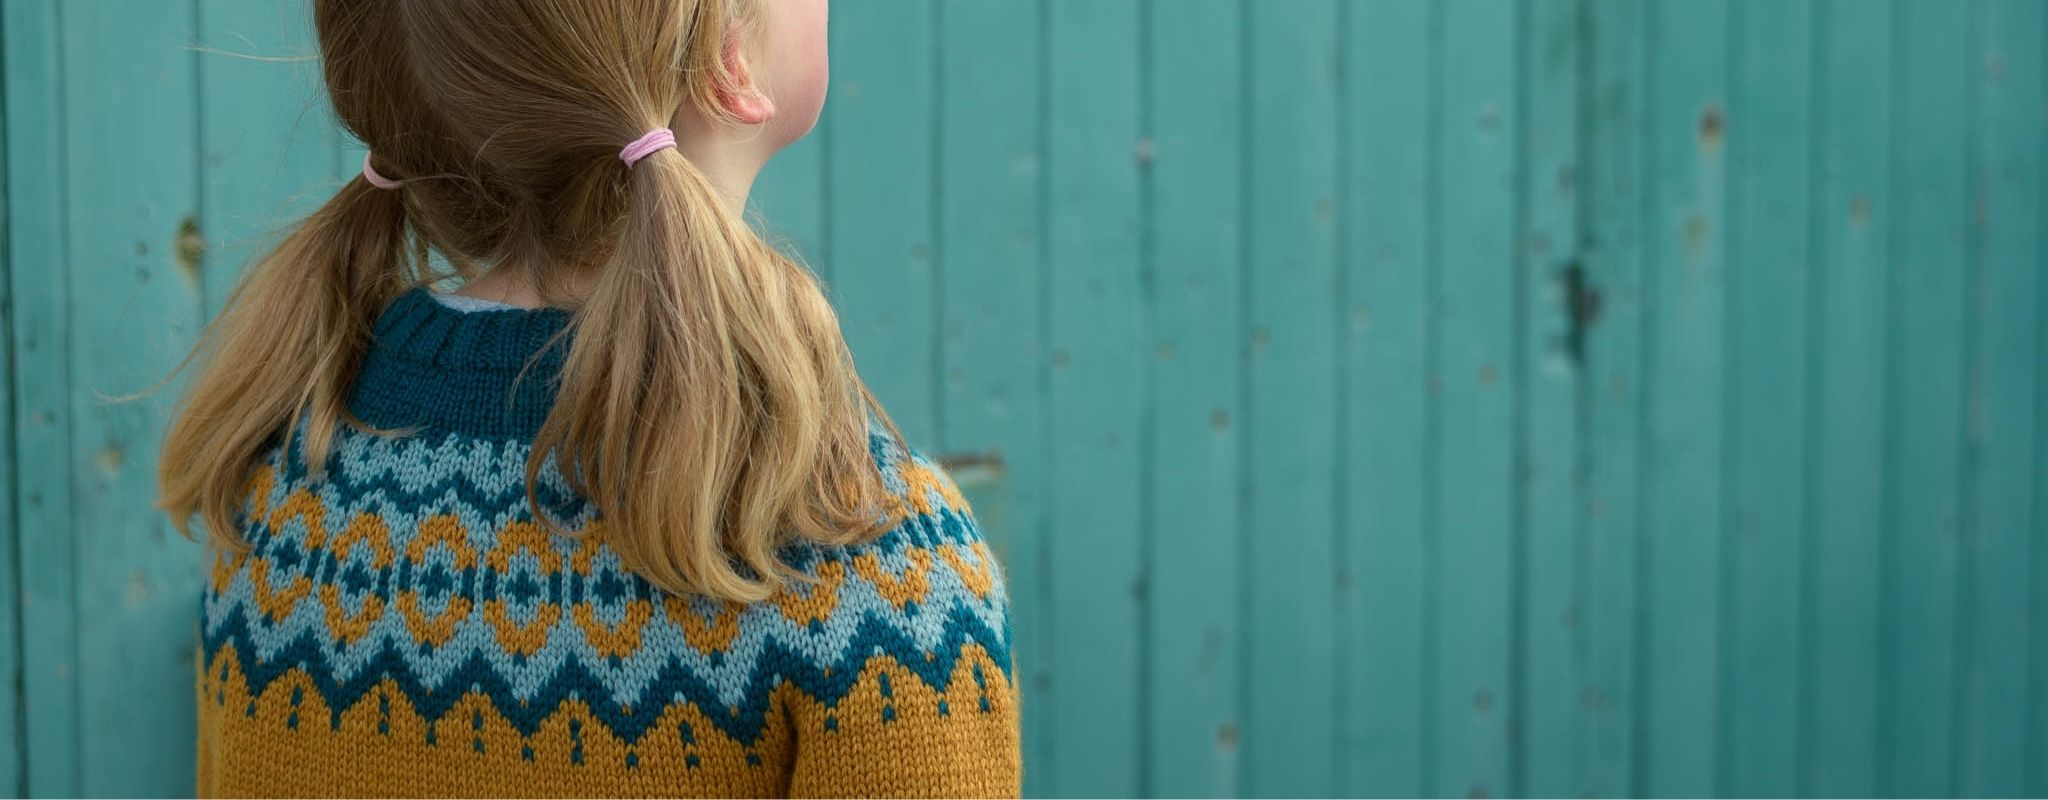 Cropped image showing a blond child with pigtails looking away from the camera, wearing the Brunstane Sweater in the vintage palette. The background is a turquoise painted wooden wall.